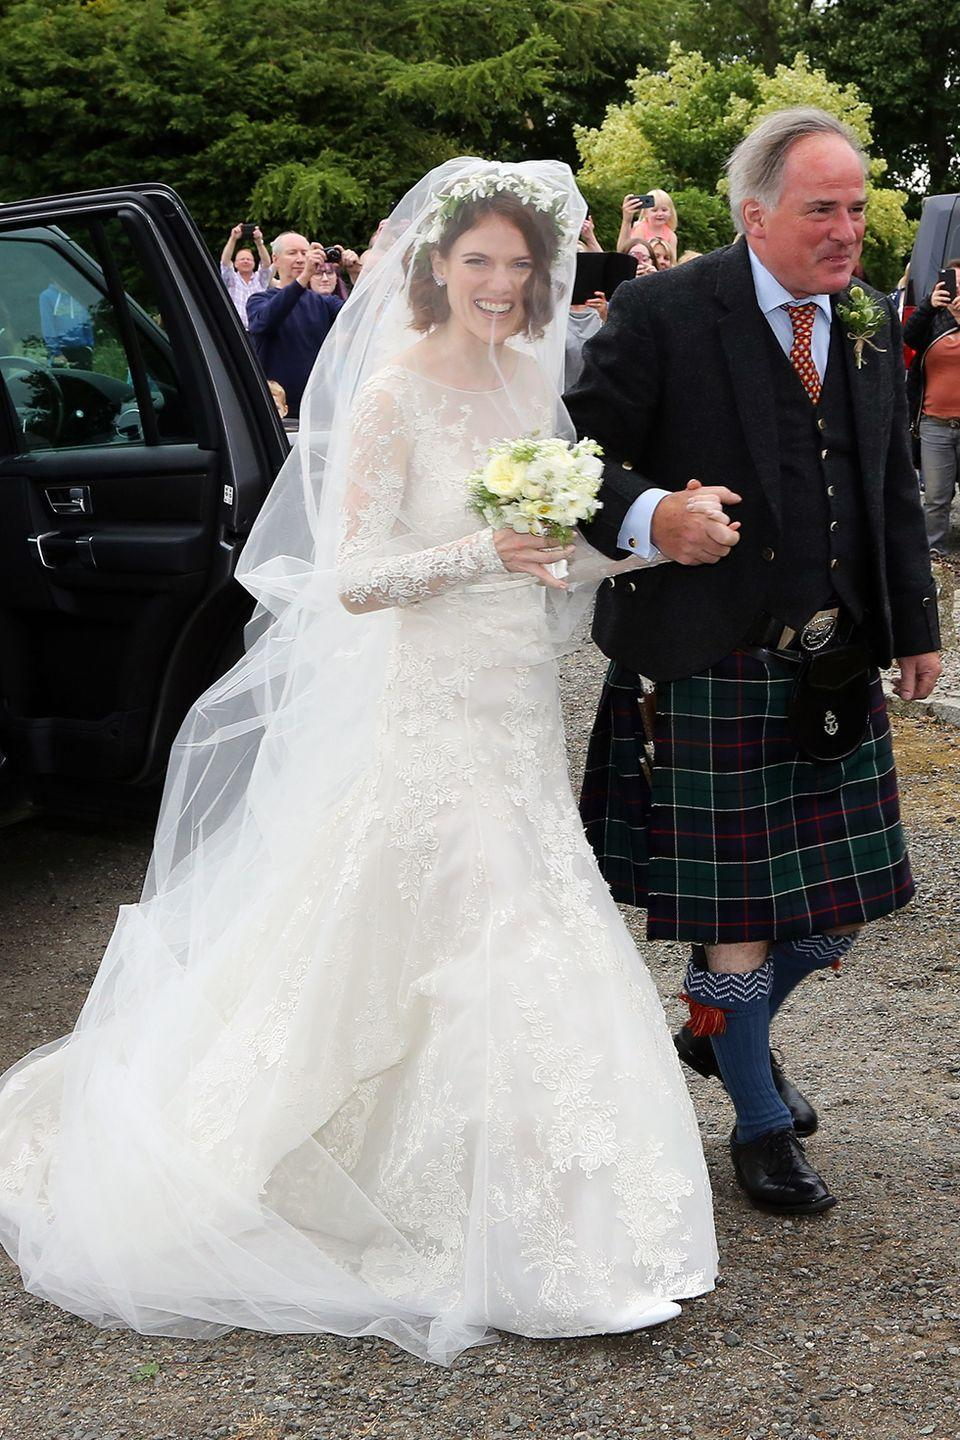 <p>Rose wore a stunning vintage-style Elie Saab wedding dress to wed <em>Game of Thrones</em> co-star Kit Harington in Scotland. The North will certainly remember this gorgeous look!</p>